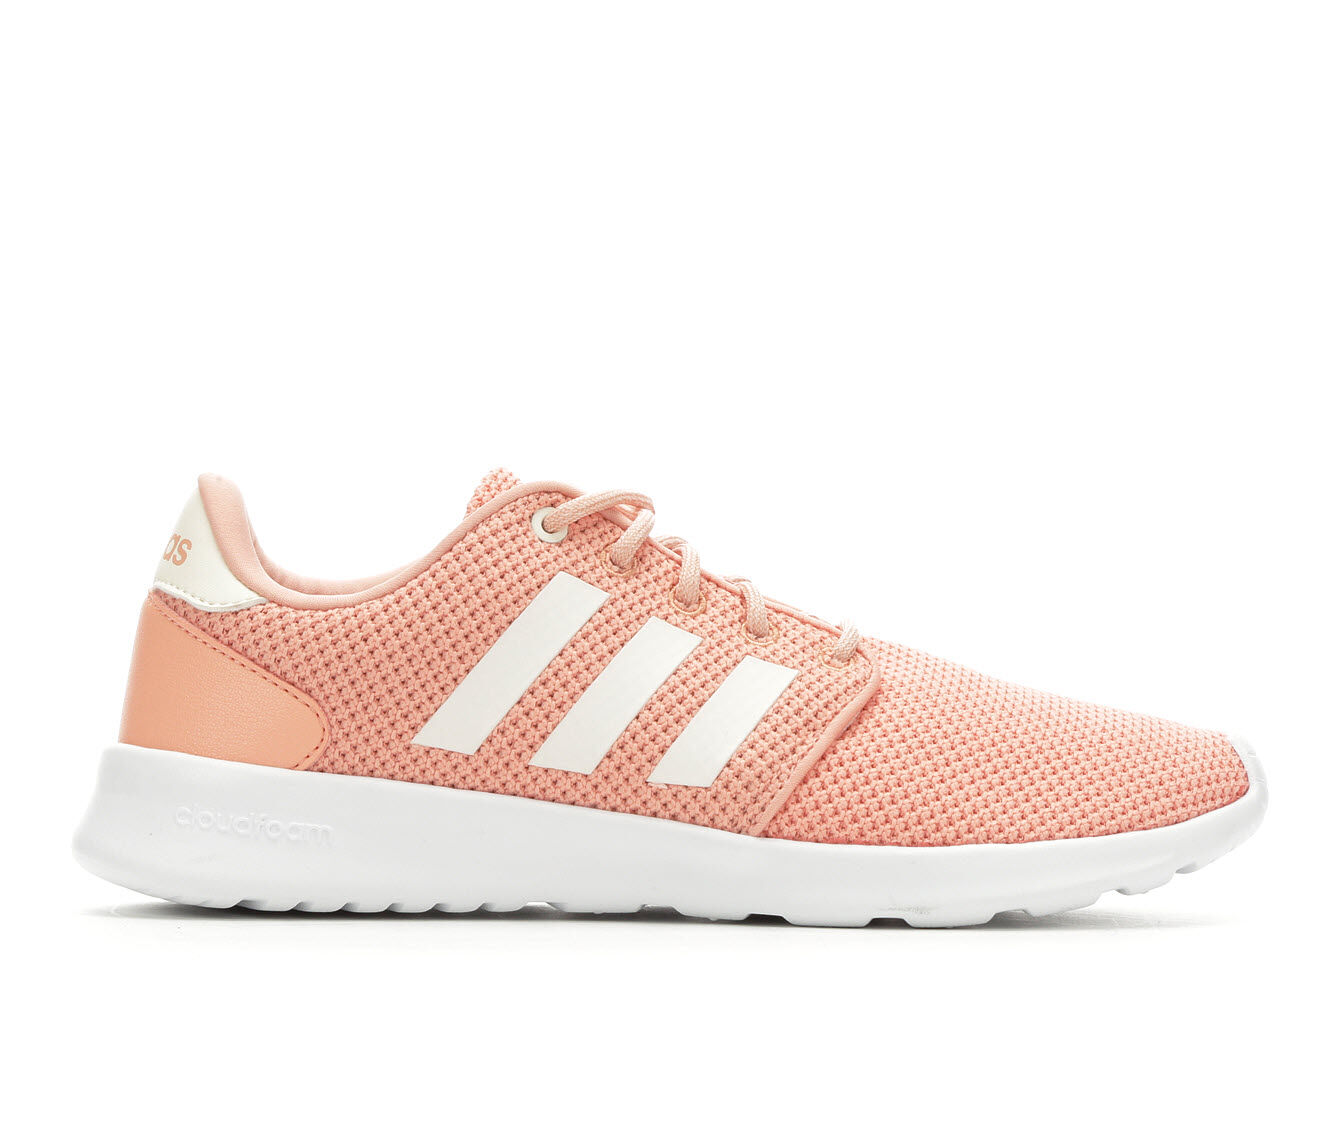 new style Women's Adidas Cloudfoam QT Racer Sneakers Dust Pink/White